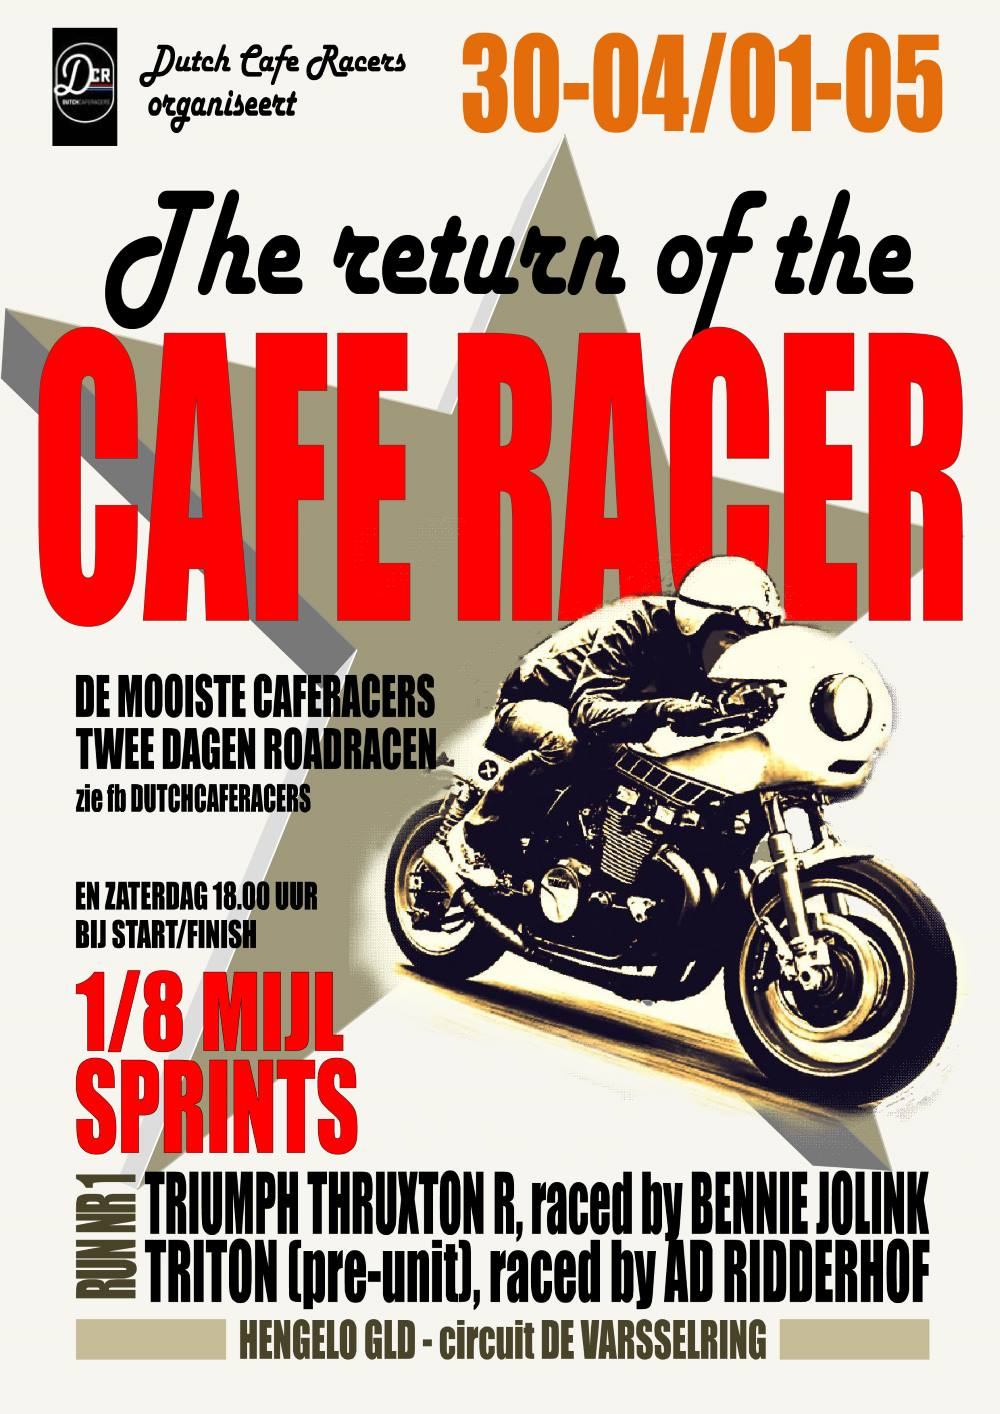 Caferacer meeting Varsselring